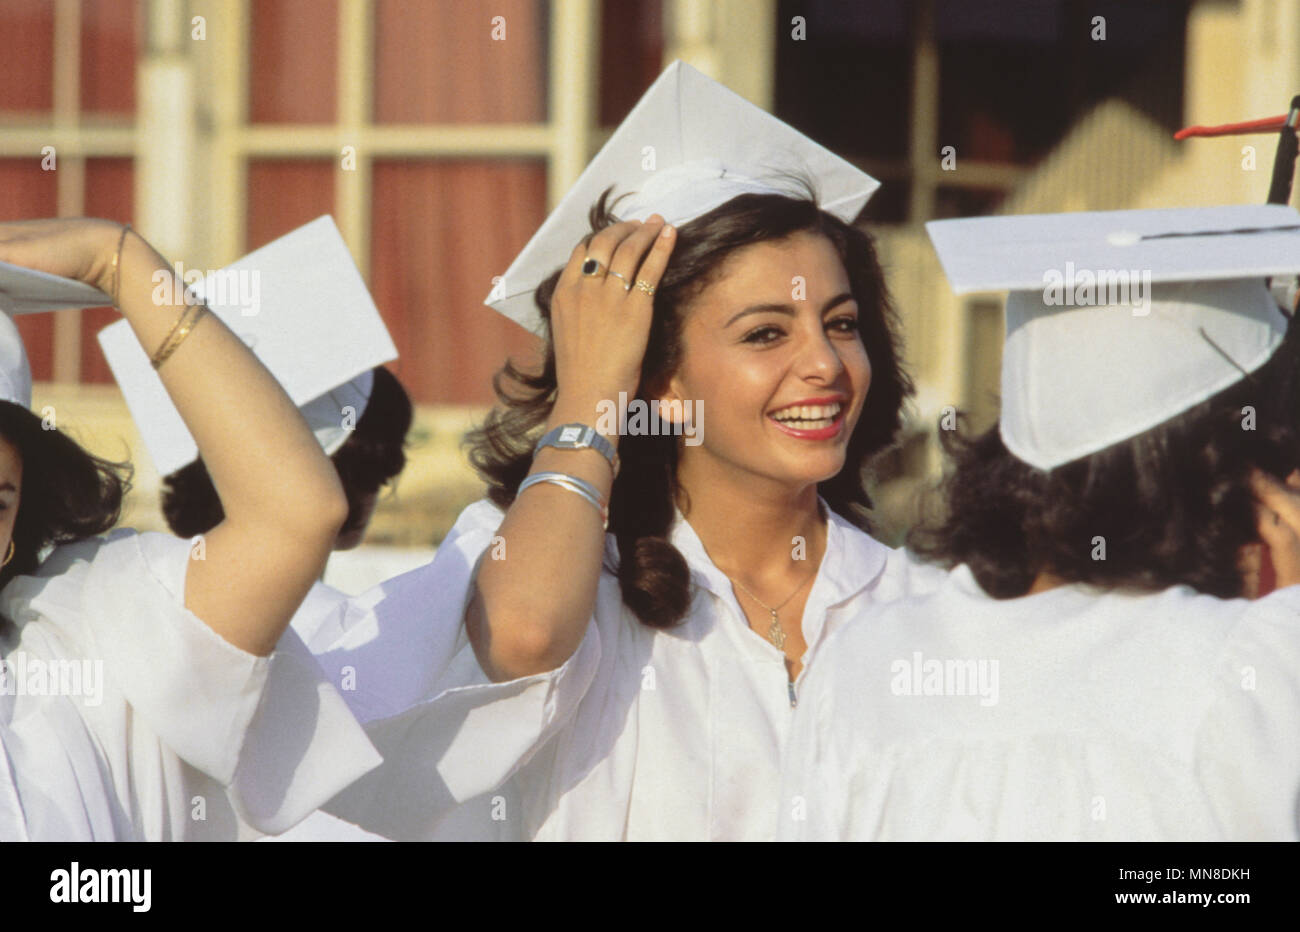 Princess Farahnaz Pahlavi, exiled royal Iranian Princess, eldest daughter of Mohammad Reza Pahlavi by his third wife Farah Diba, at her graduation from the Cairo American College High School in 1980. - Stock Image